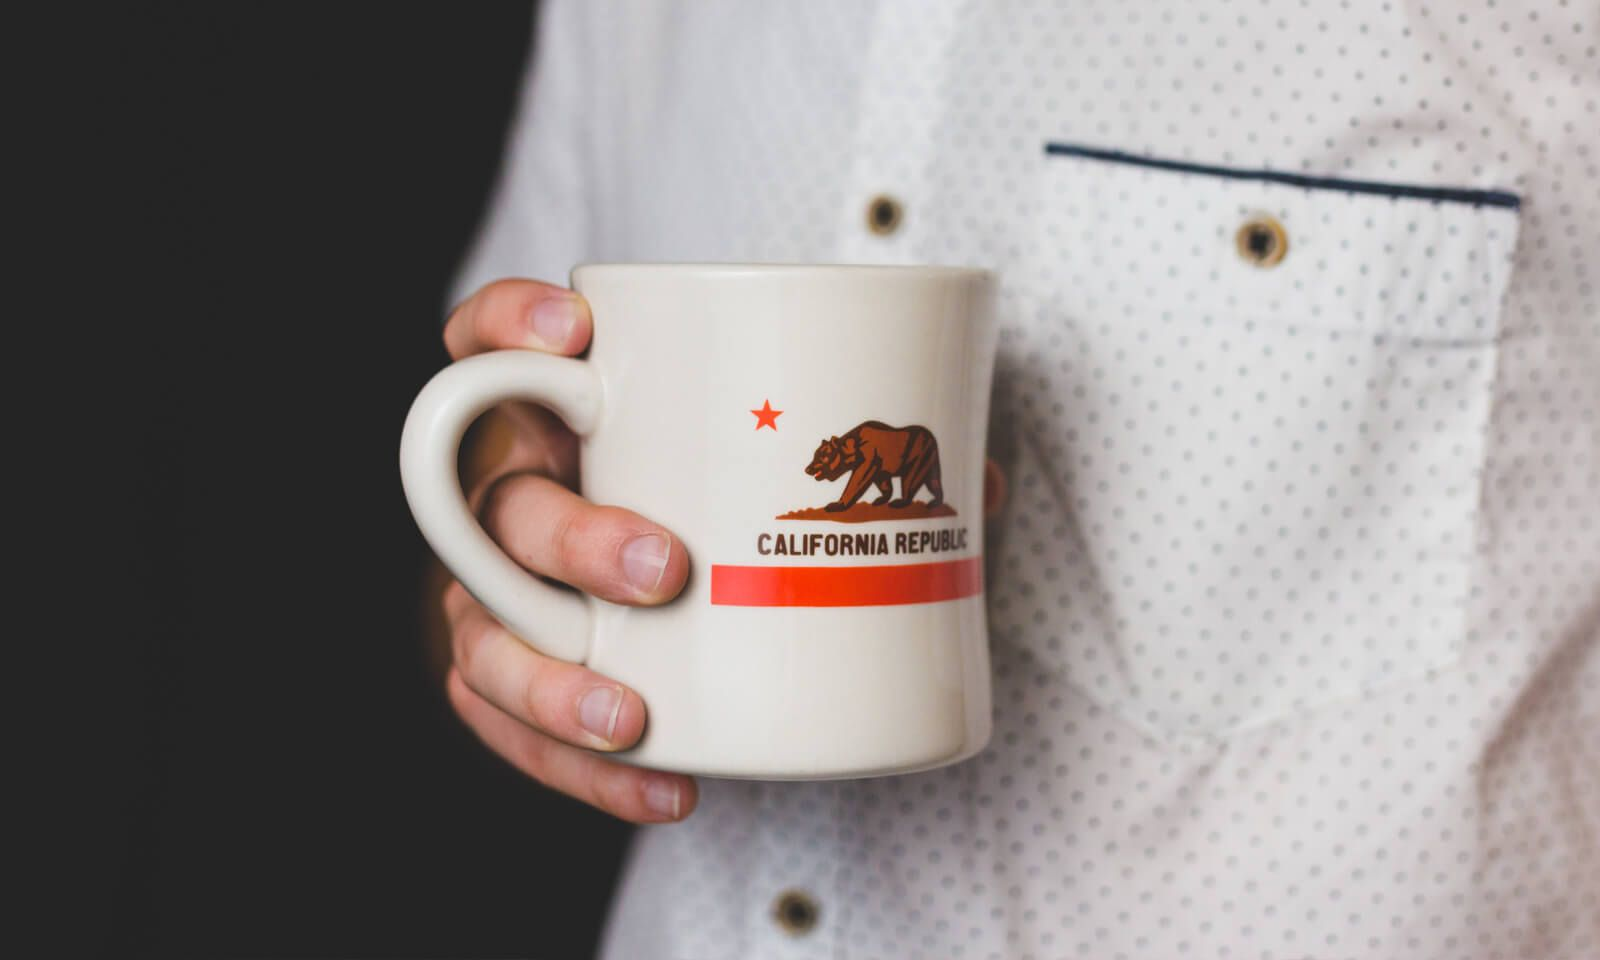 How to Start an Online Business in California